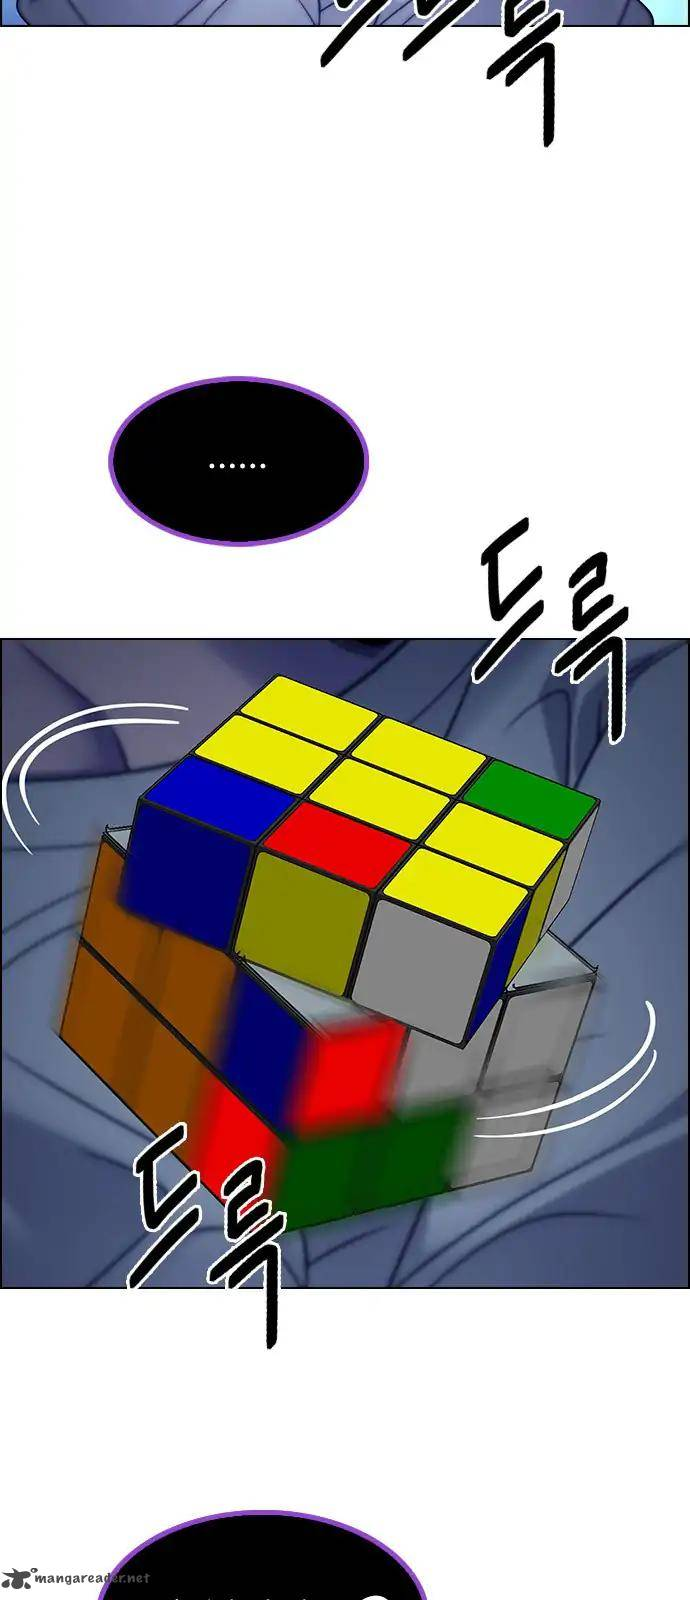 dice_the_cube_that_changes_everything_266_42